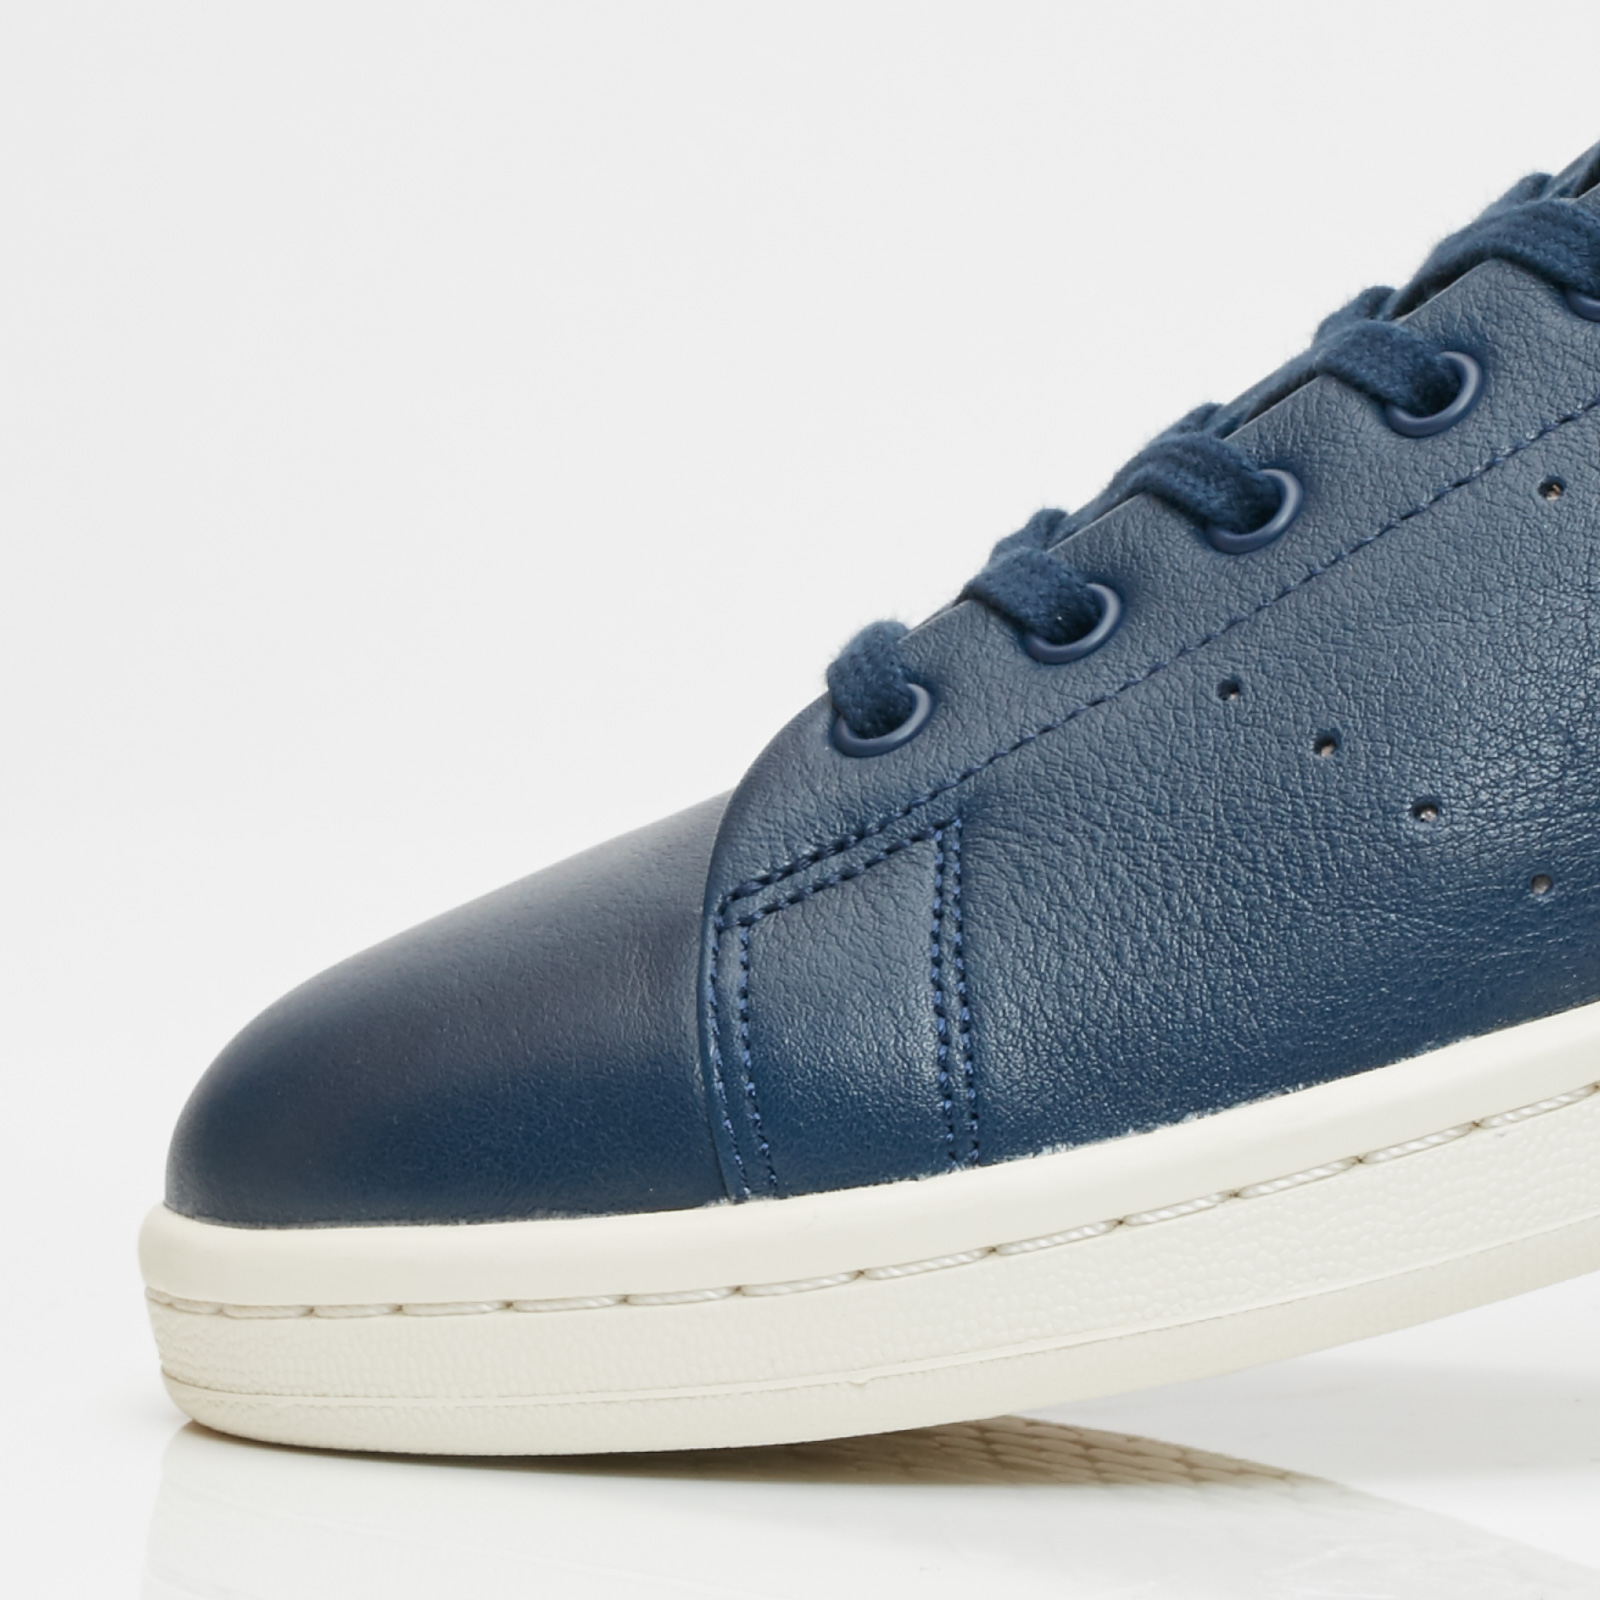 adidas Stan Smith Recon - Cq3034 - Sneakersnstuff  a5963be42